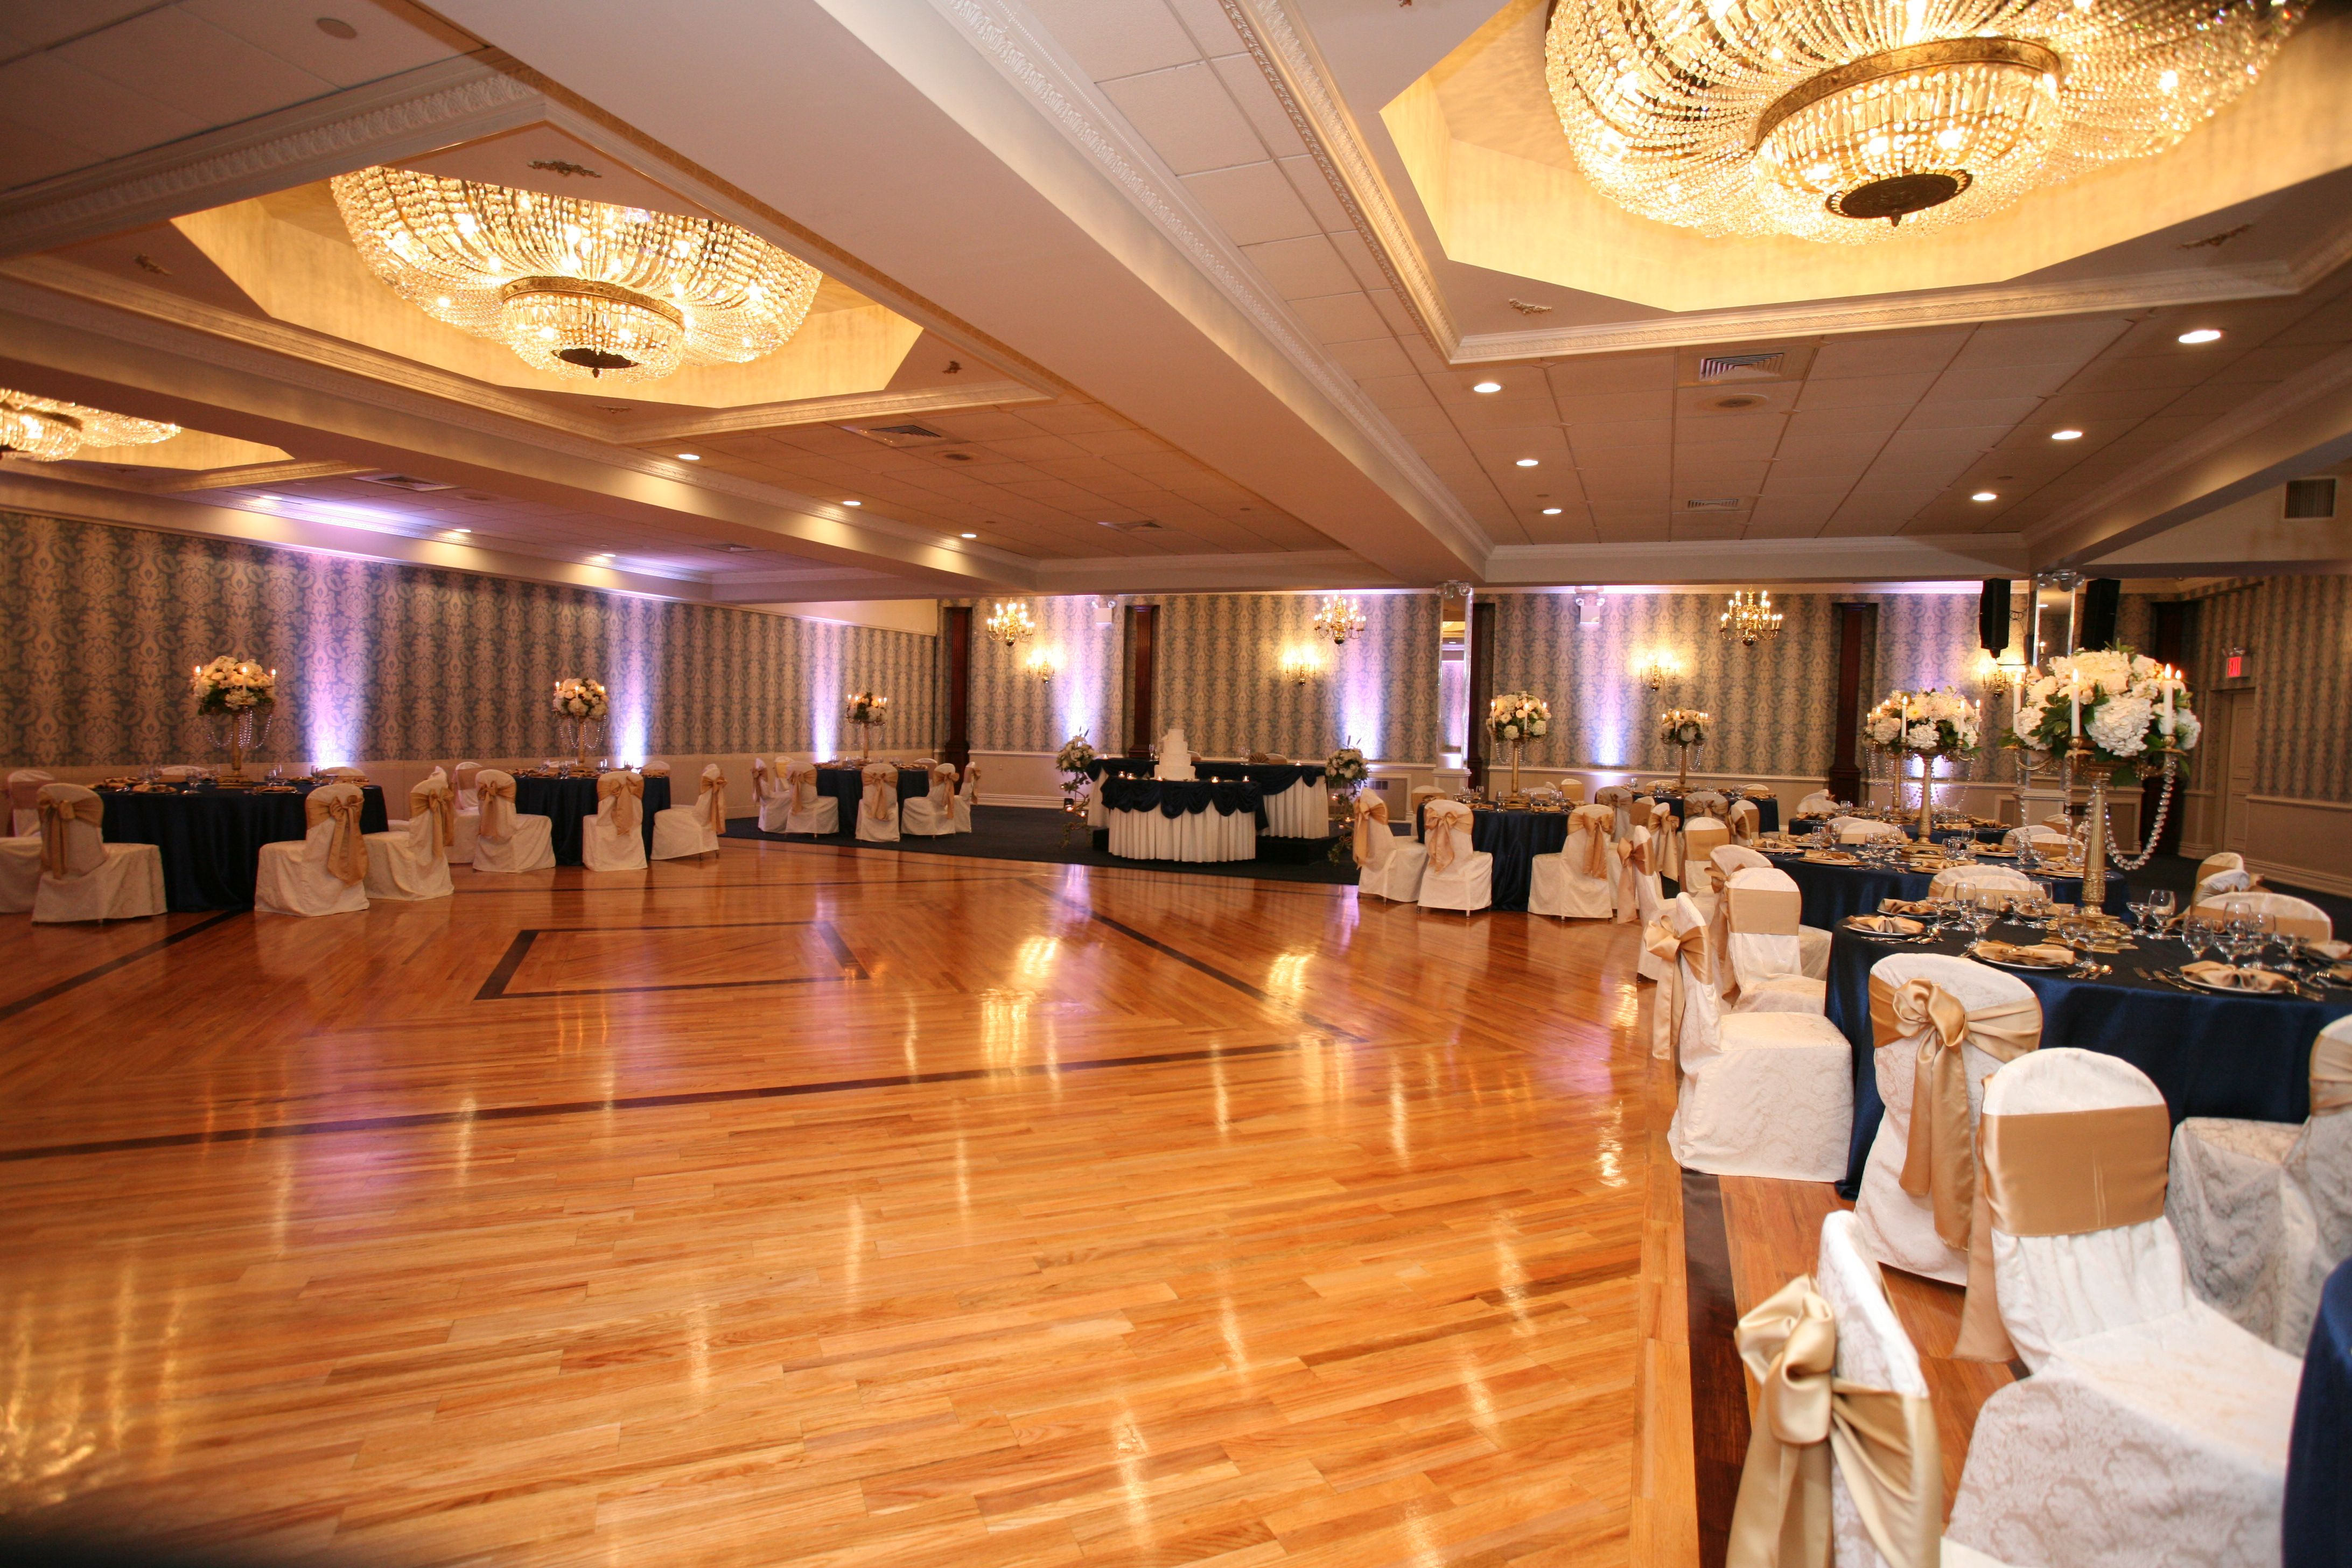 Antuns Antunsqueens Antunsqueensvillage Weddings Sweet16 Cateringhall Weddingreception Weddingceremony Quee Catering Halls Wedding Venues Wedding Hall